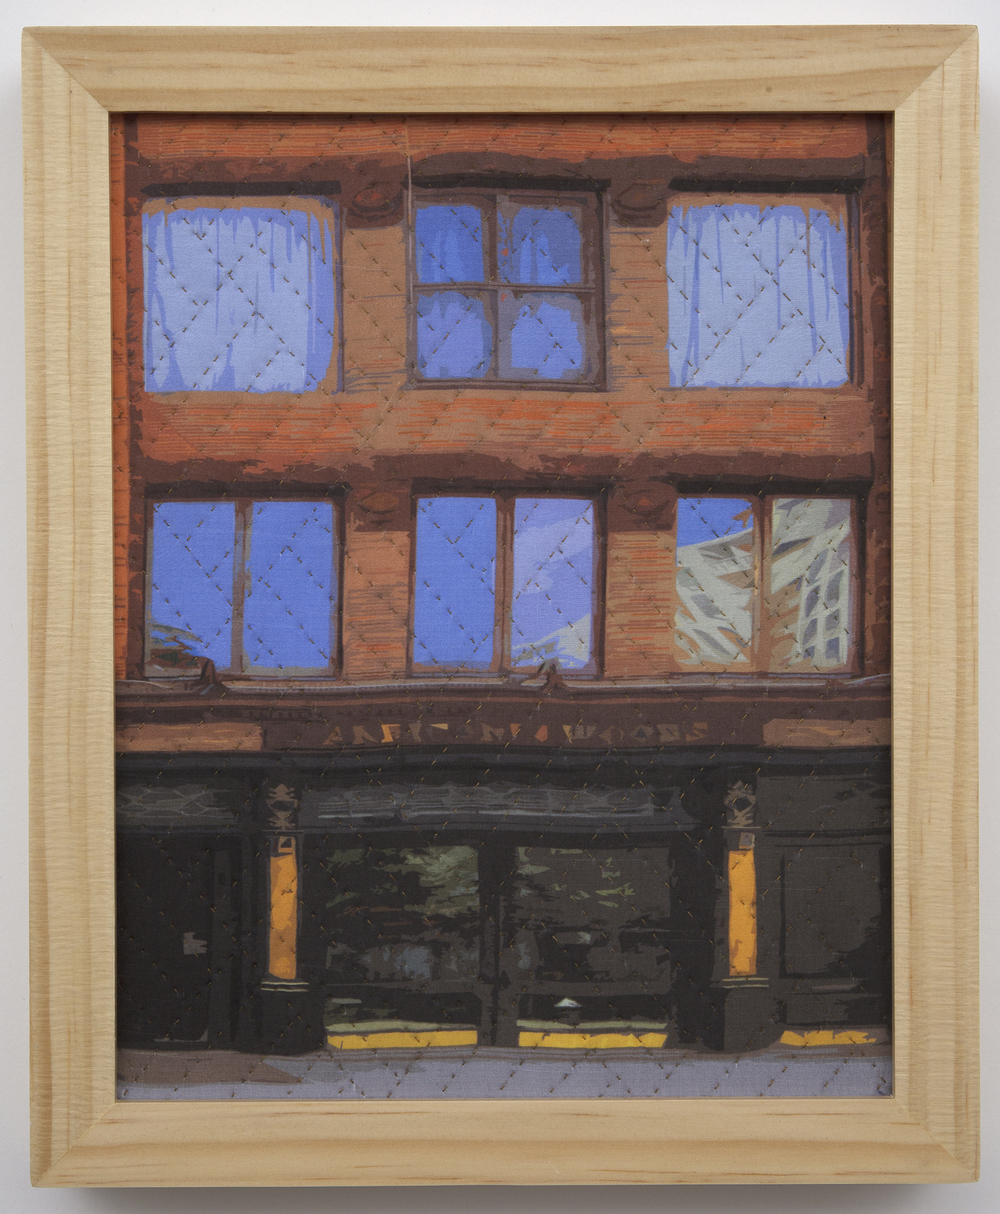 "500-4. study for new york windows 1328, 10""x8"", mixed media on silk, hand quilted, framed"